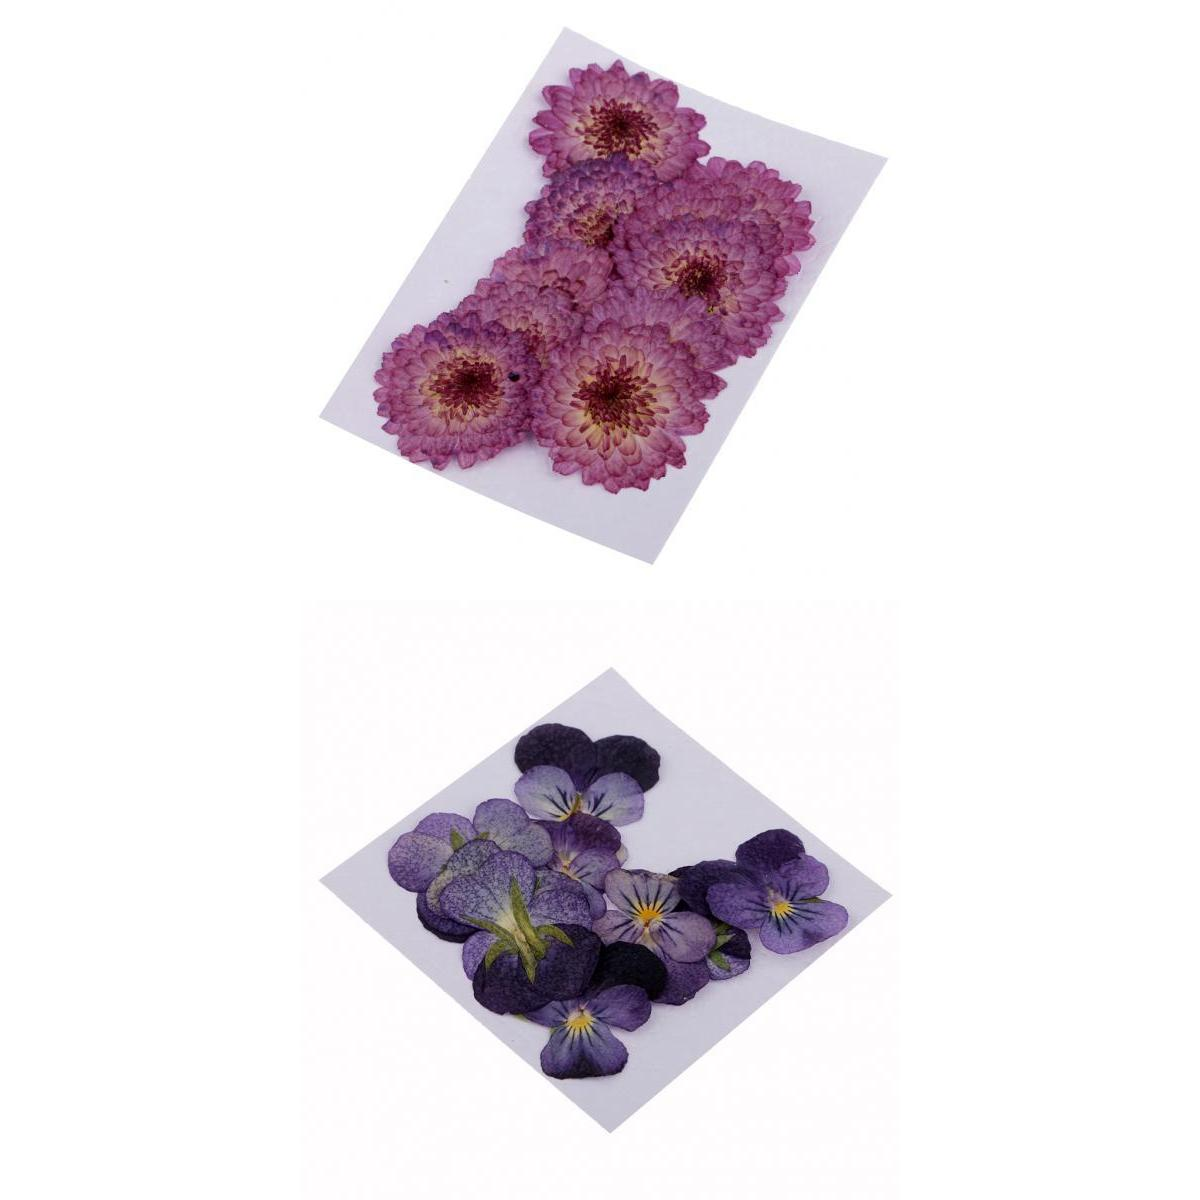 22pcs Pressed Real Daisy Pansy Dried Flowers DIY Floral Decor Embellishment